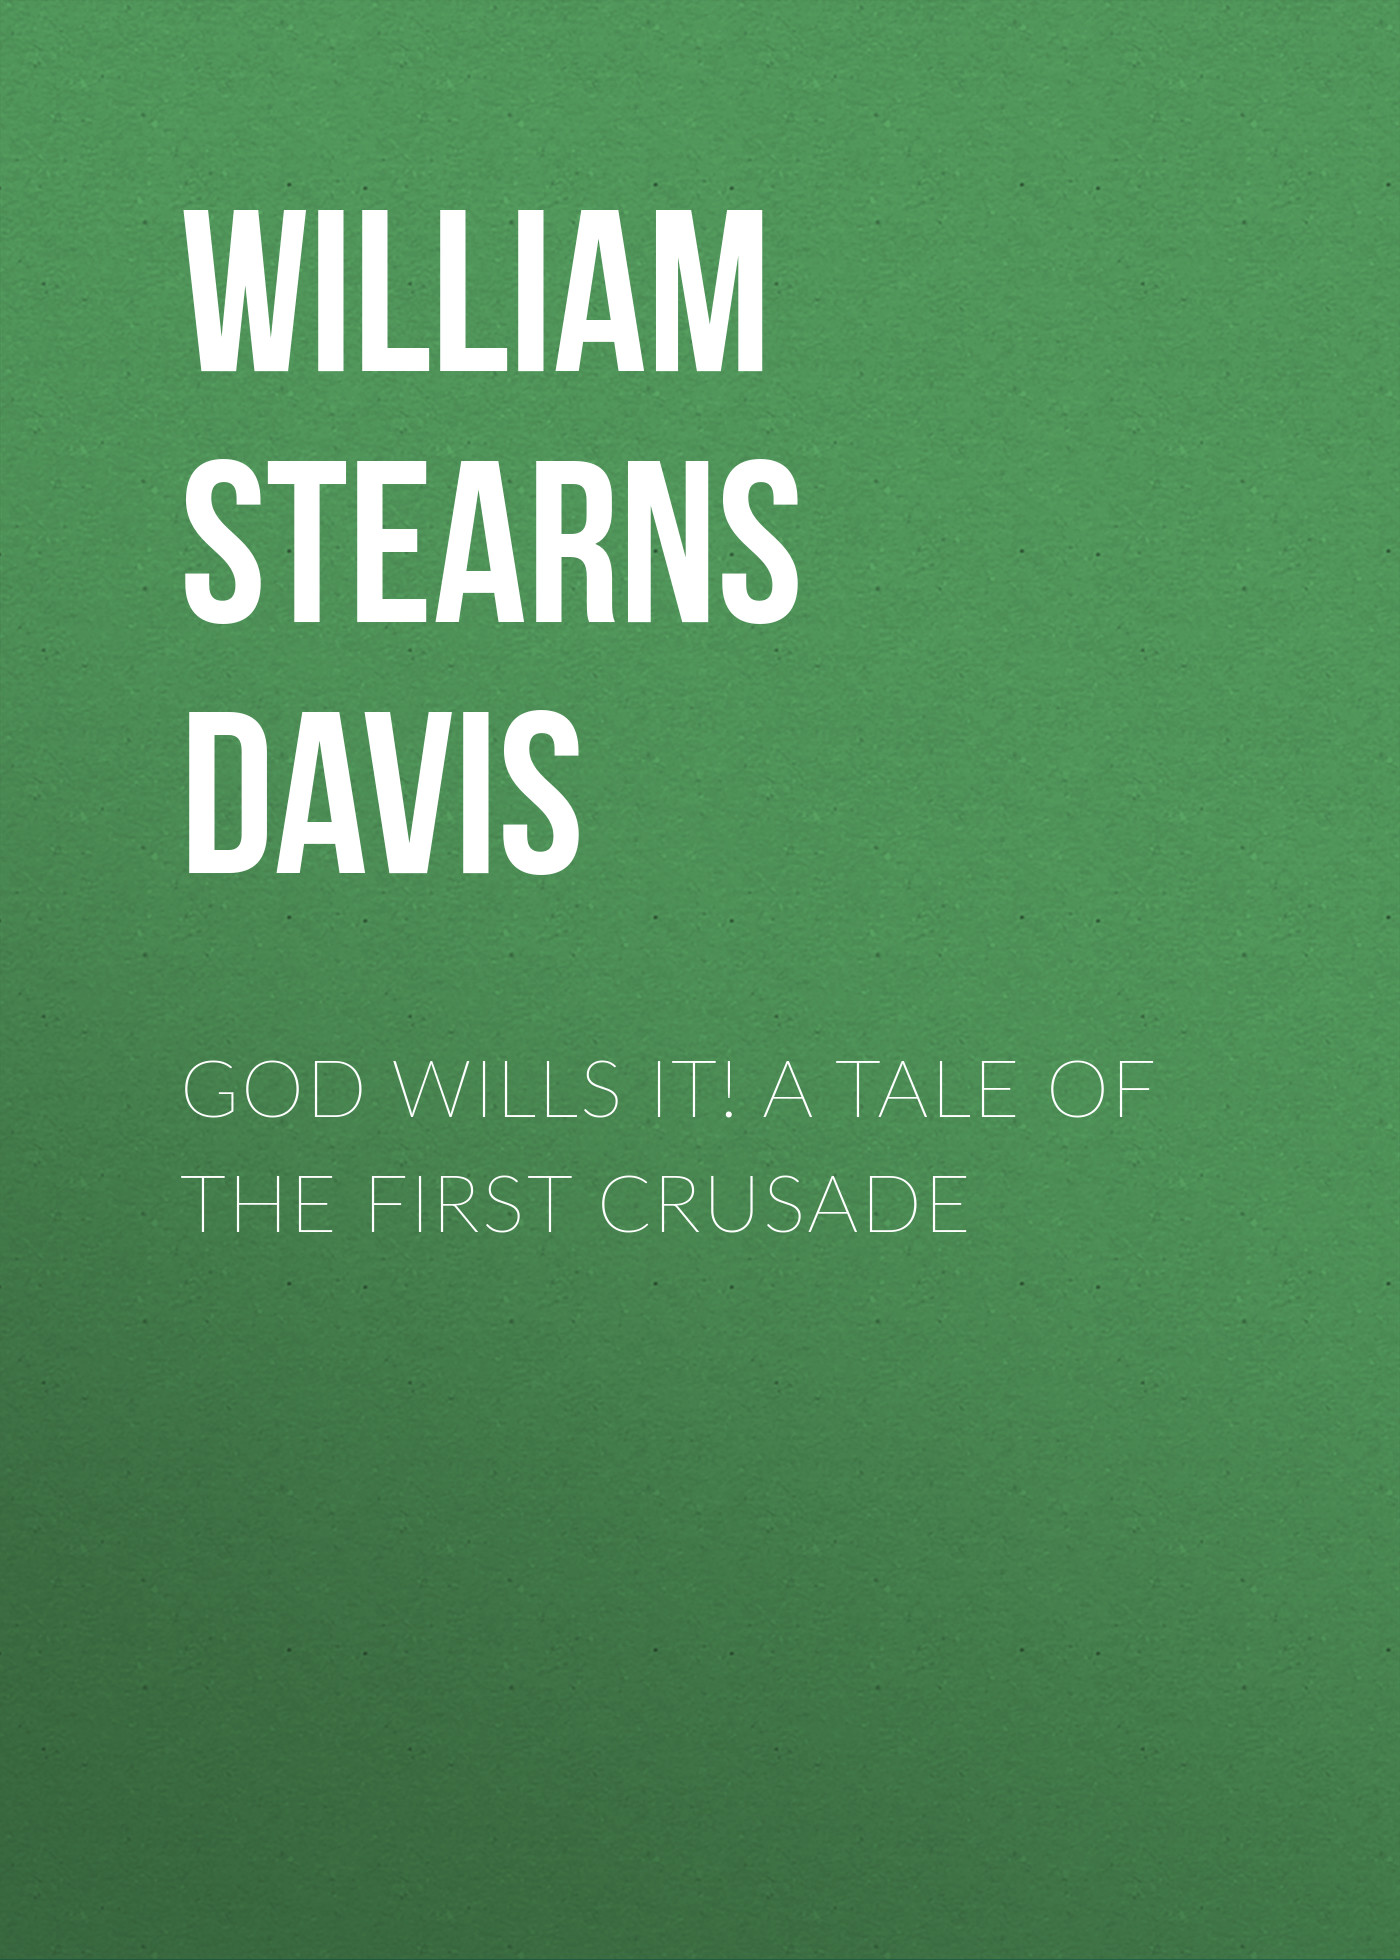 William Stearns Davis God Wills It A Tale of the First Crusade